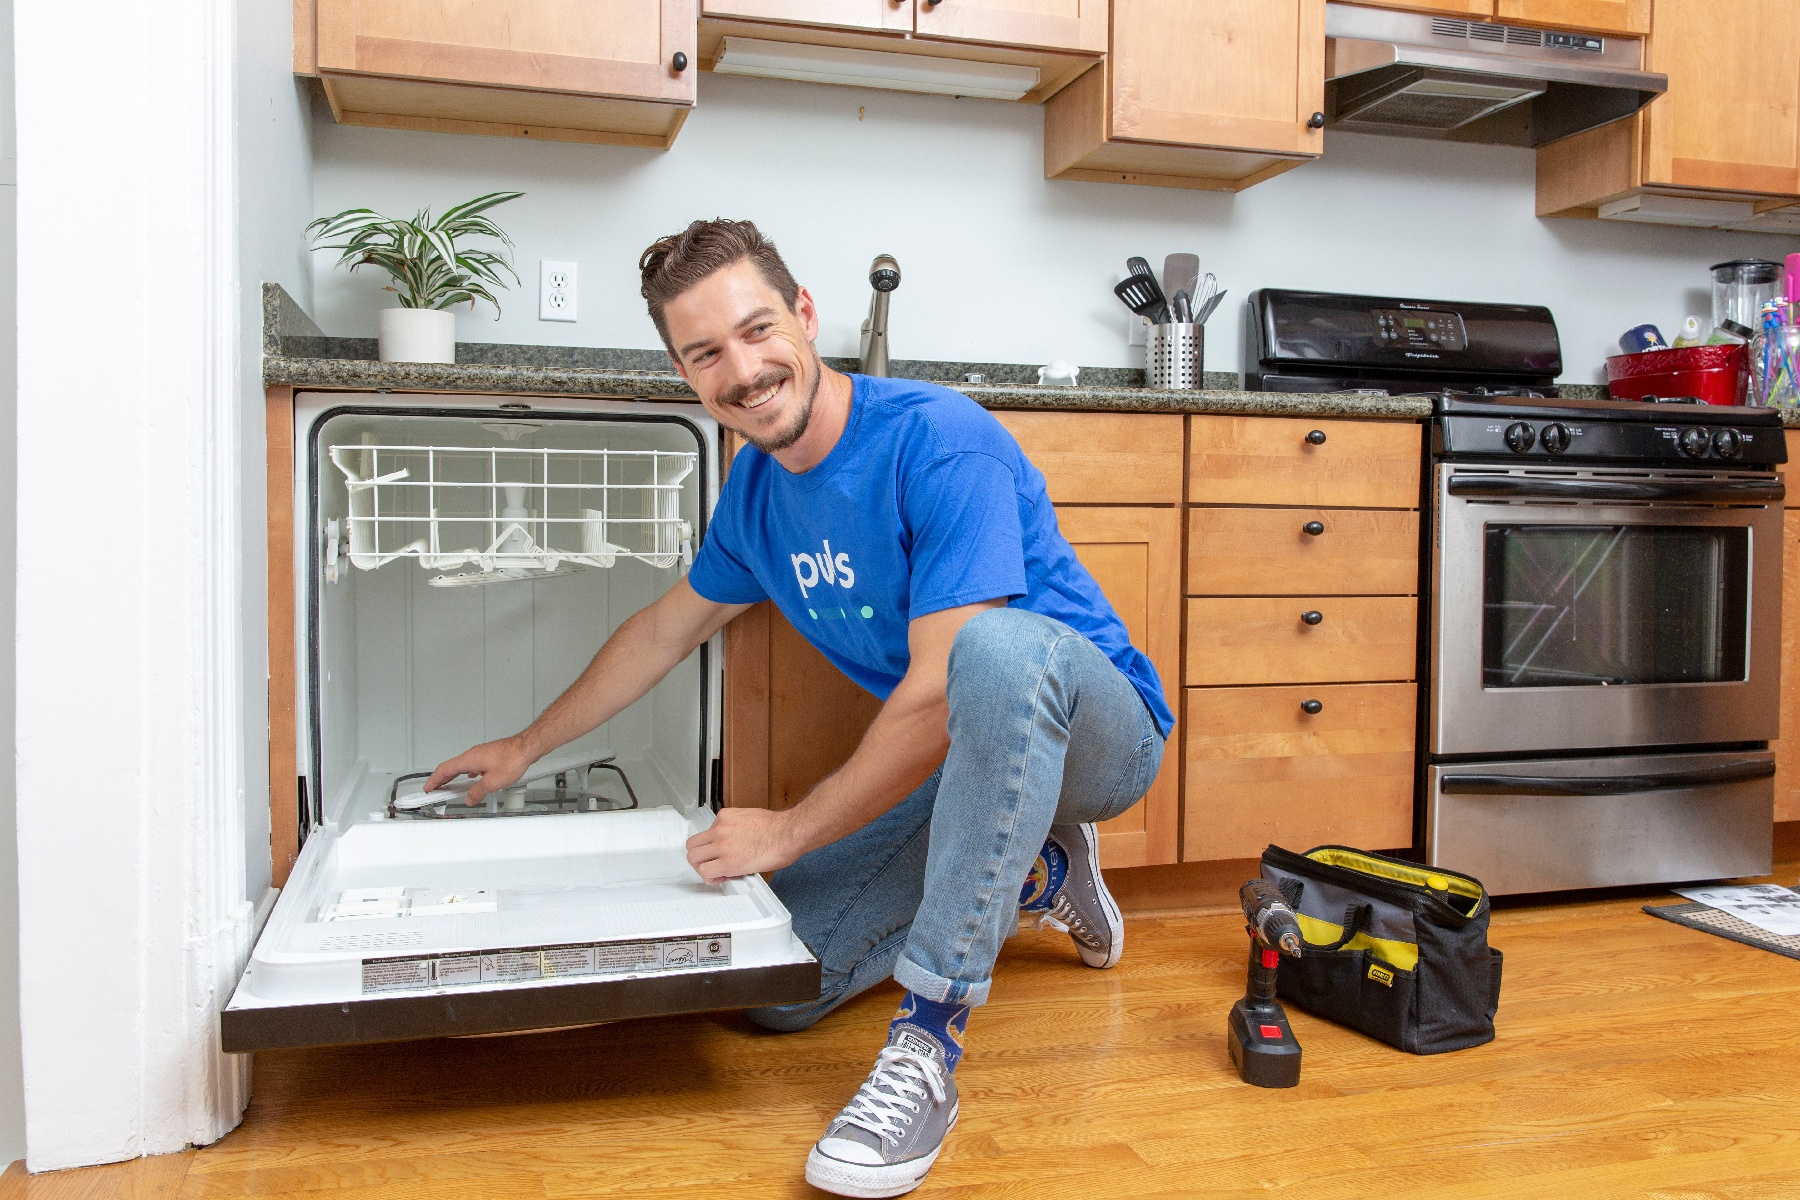 Puls offers LG appliance repair near you